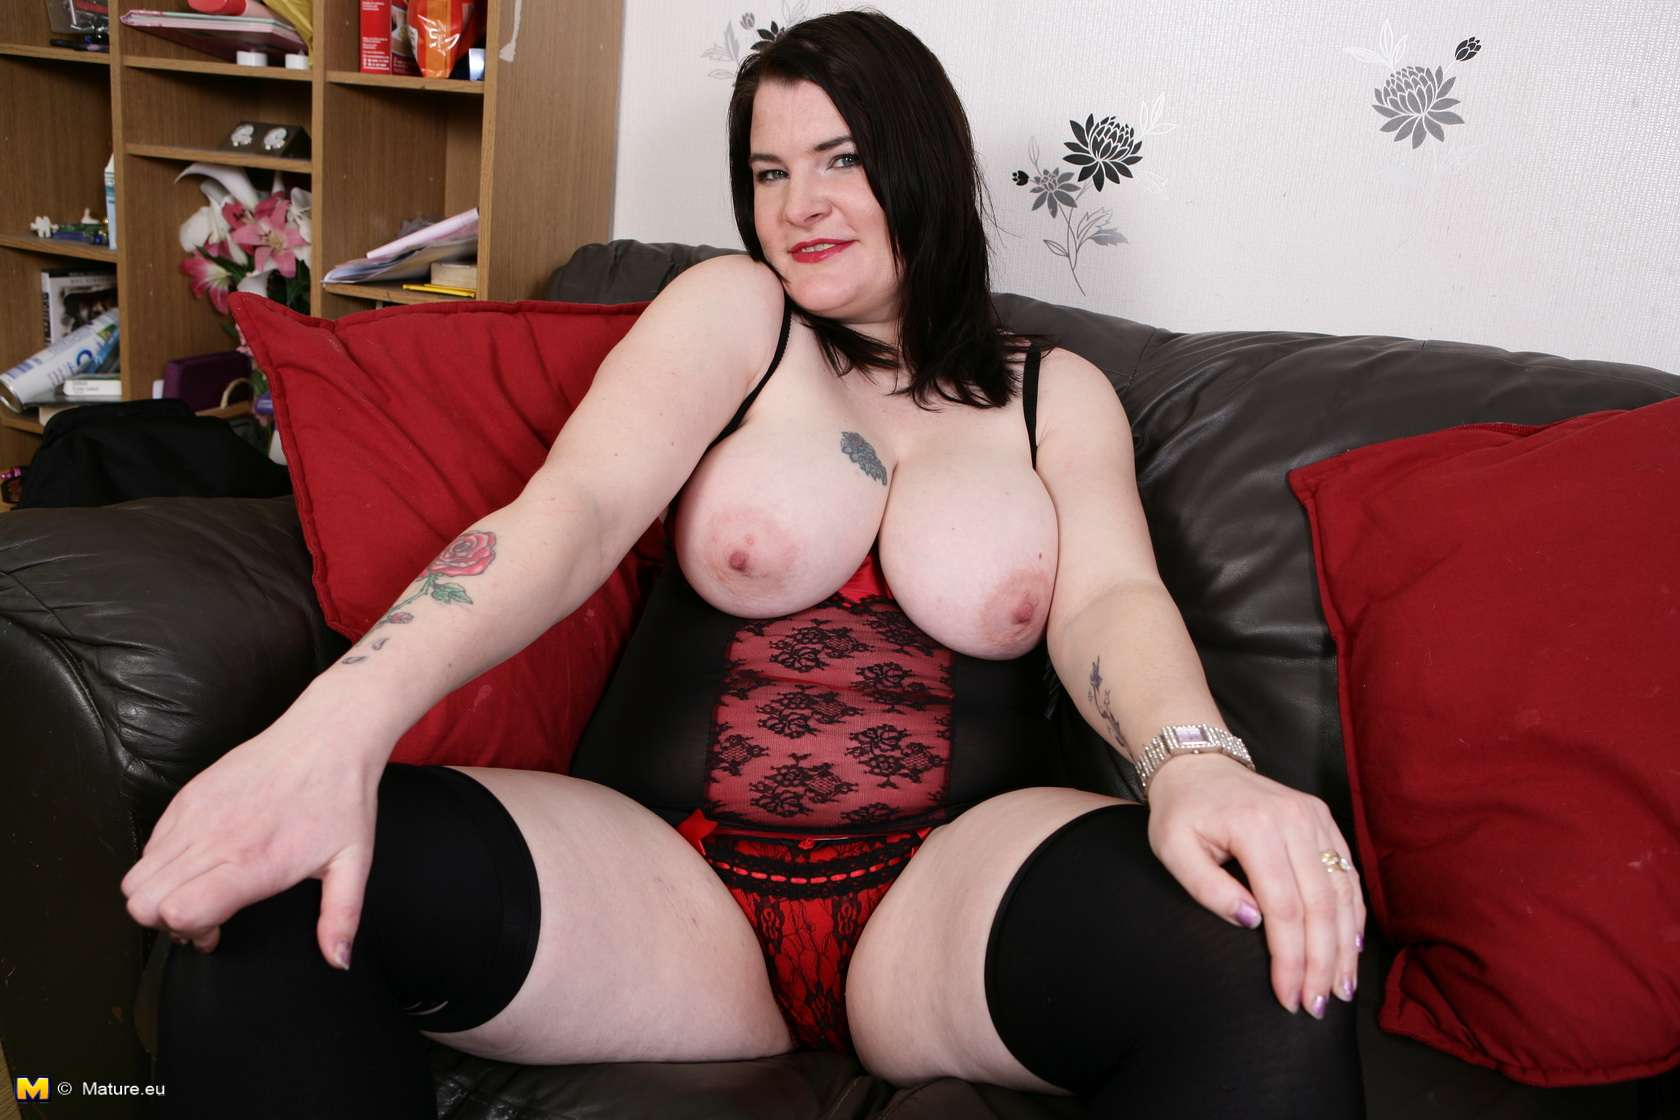 Curvy mature lady with nice full tits playing with herself